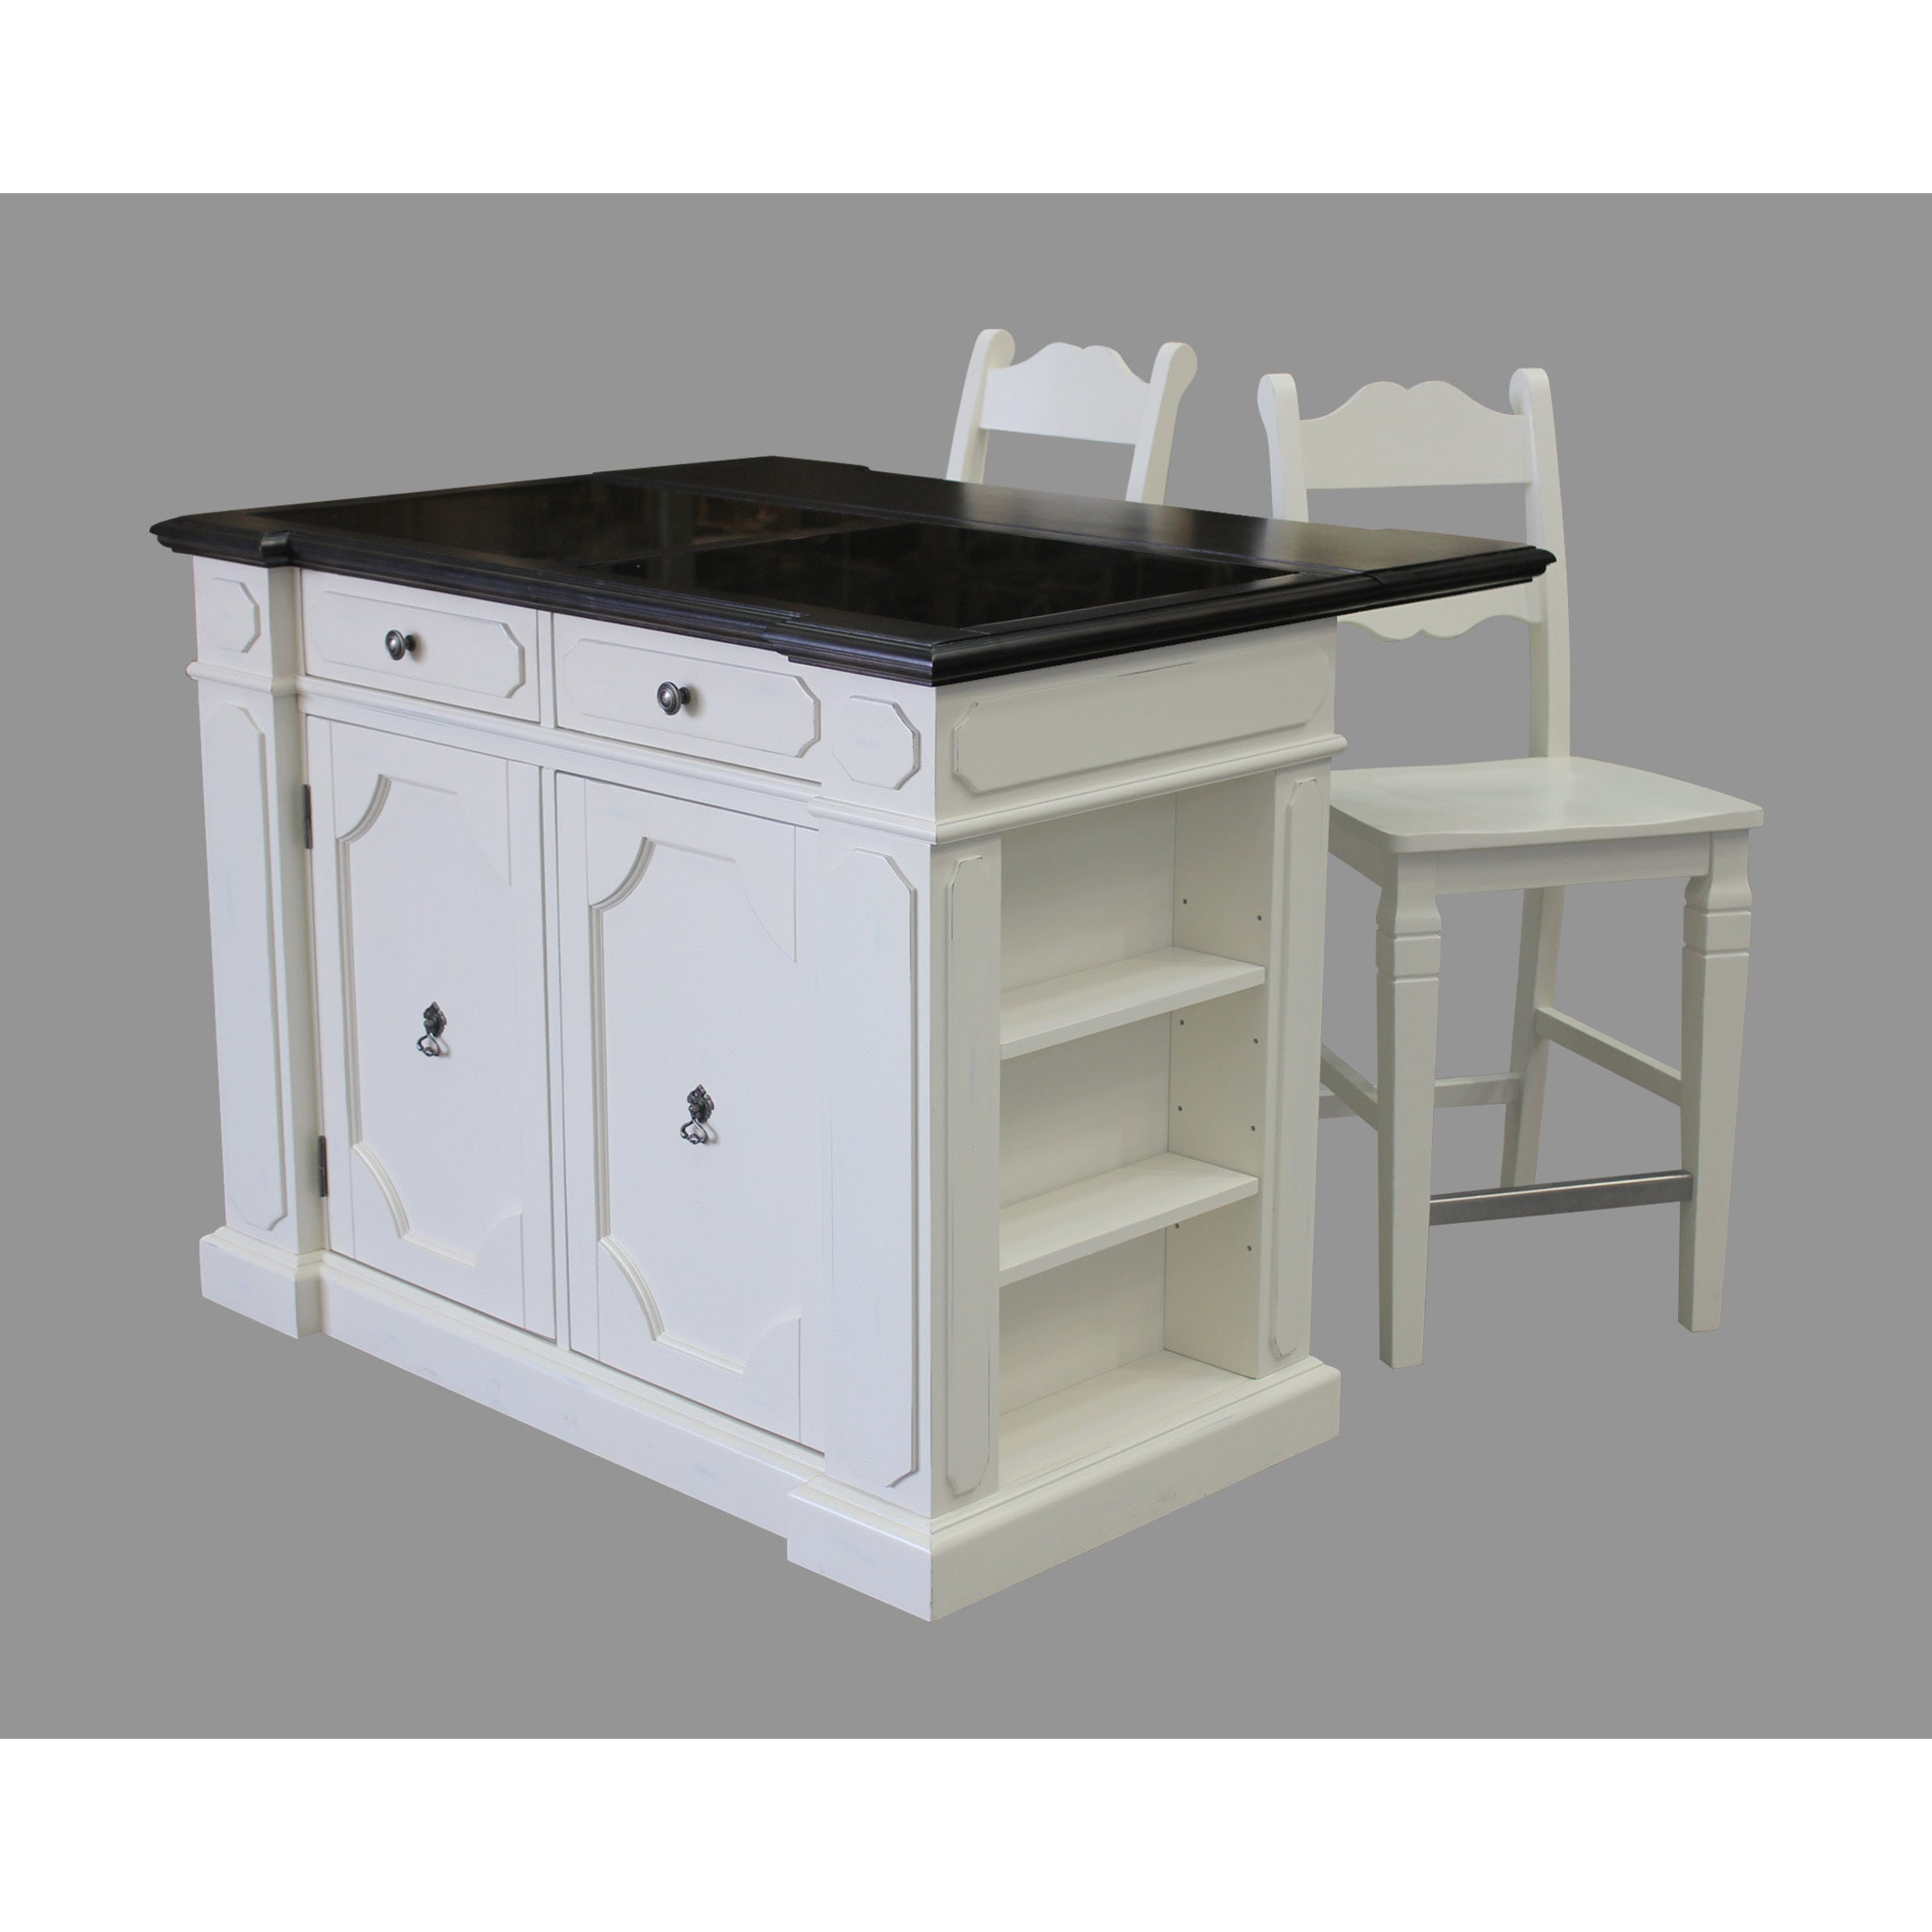 Havenside Home Driftwood Granite Top Kitchen Island with 2 Stools